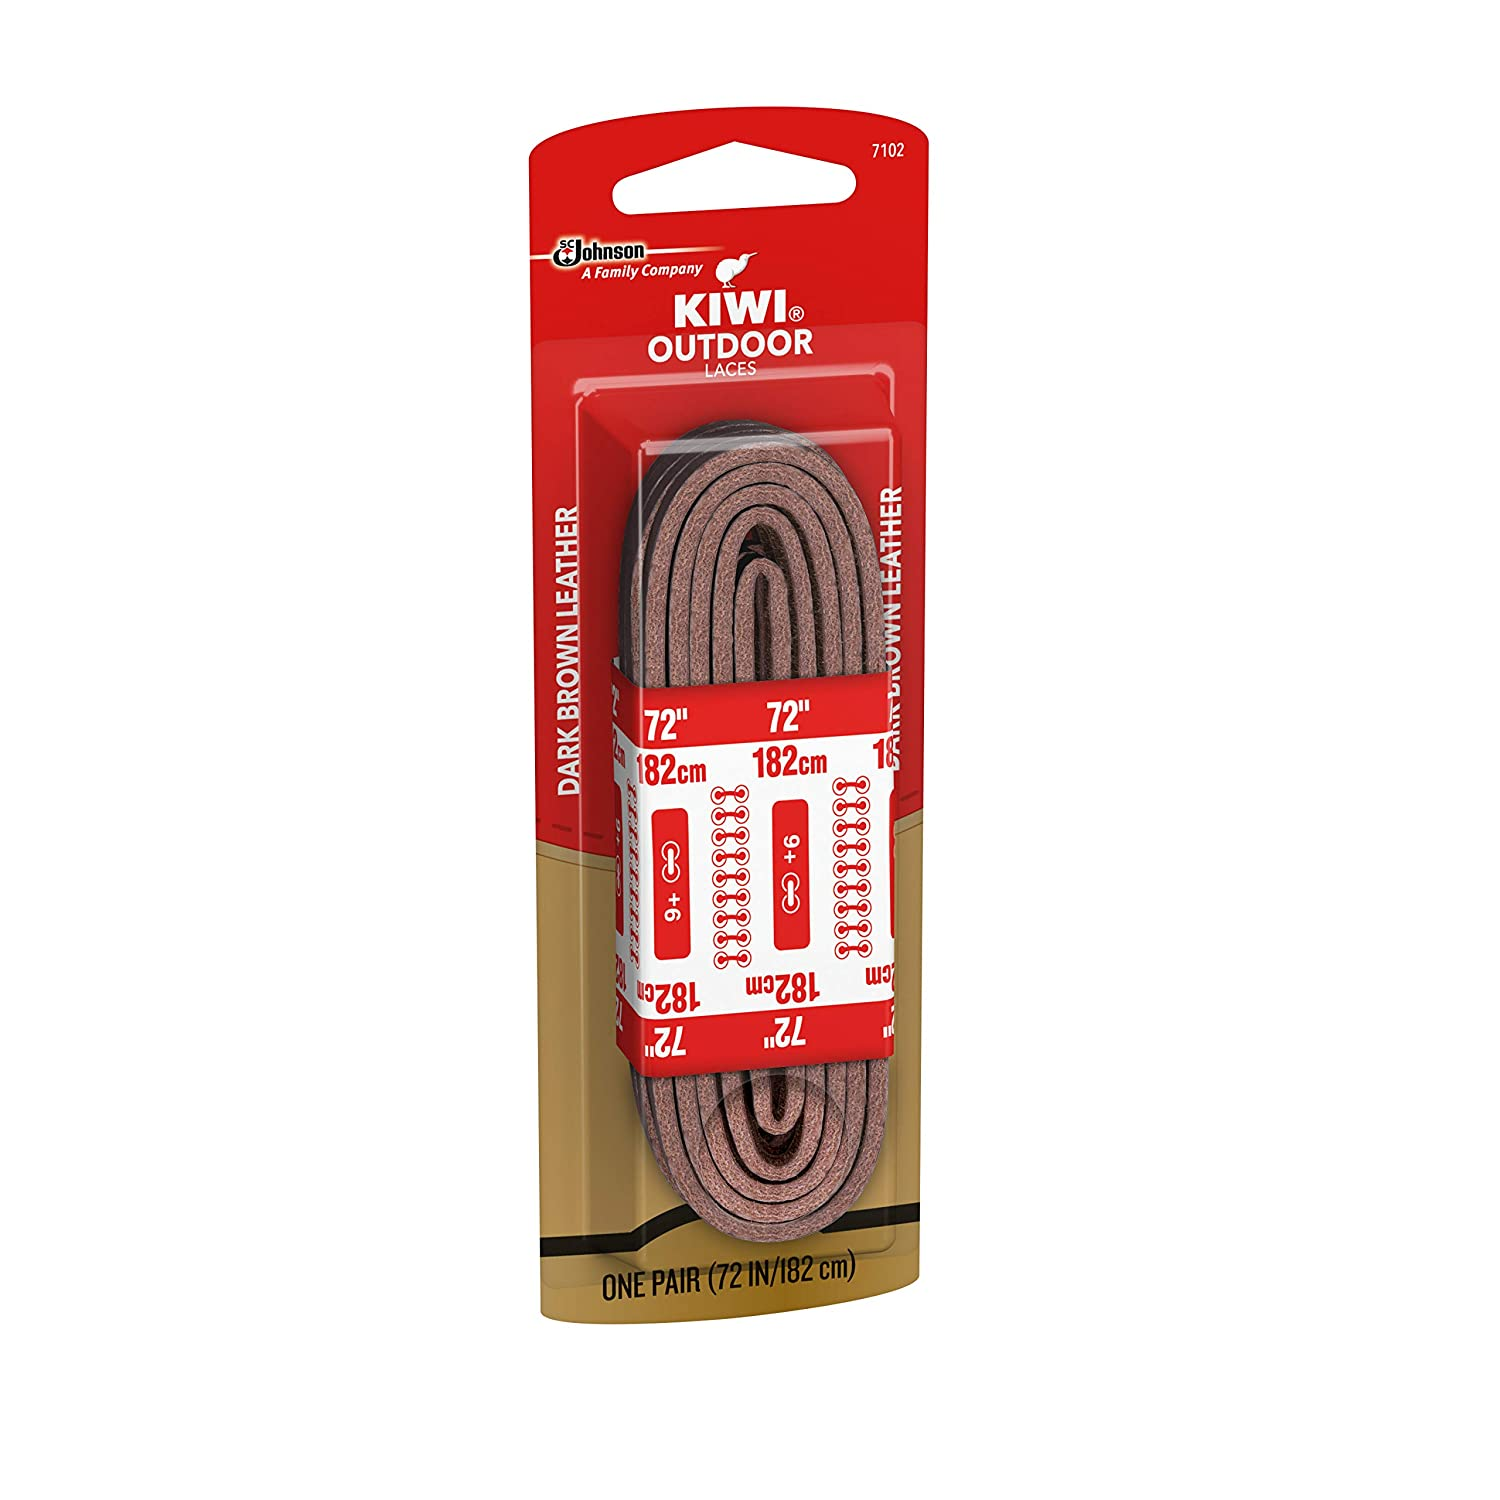 KIWI Outdoor Square Leather Laces